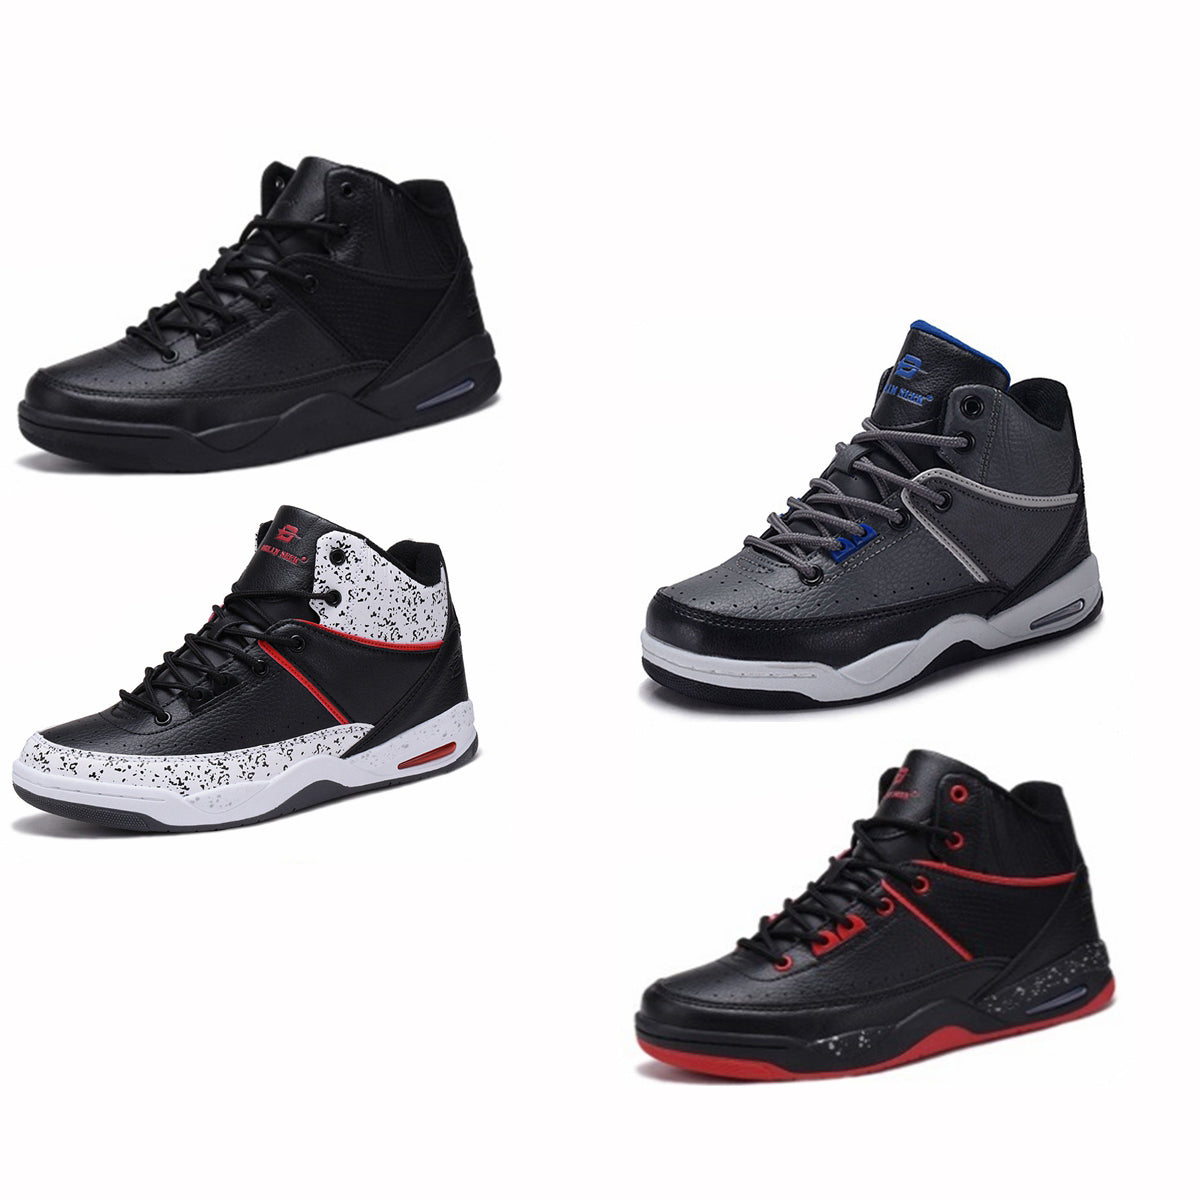 Wholesale Men's Shoes Lace Up Hiking Running Boots Cardo NCP12